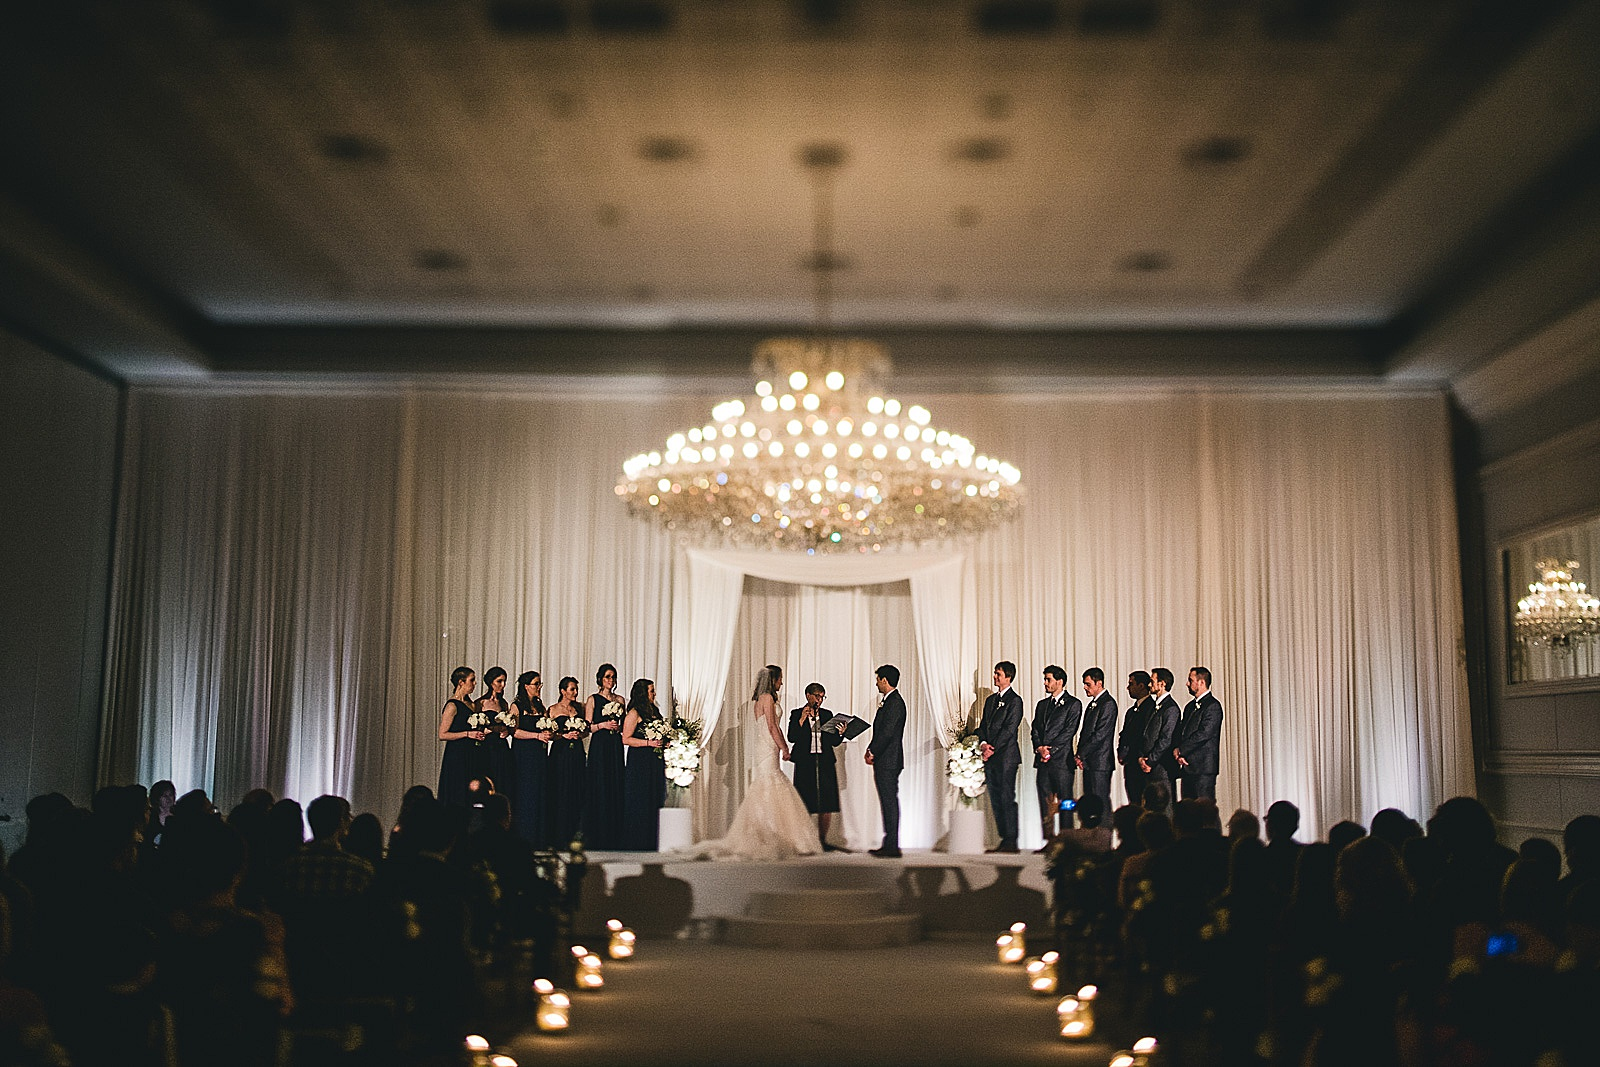 24 wedding ceremony at drury lane - Oakbrook Wedding Photos at Drury Lane // Marina + Joe